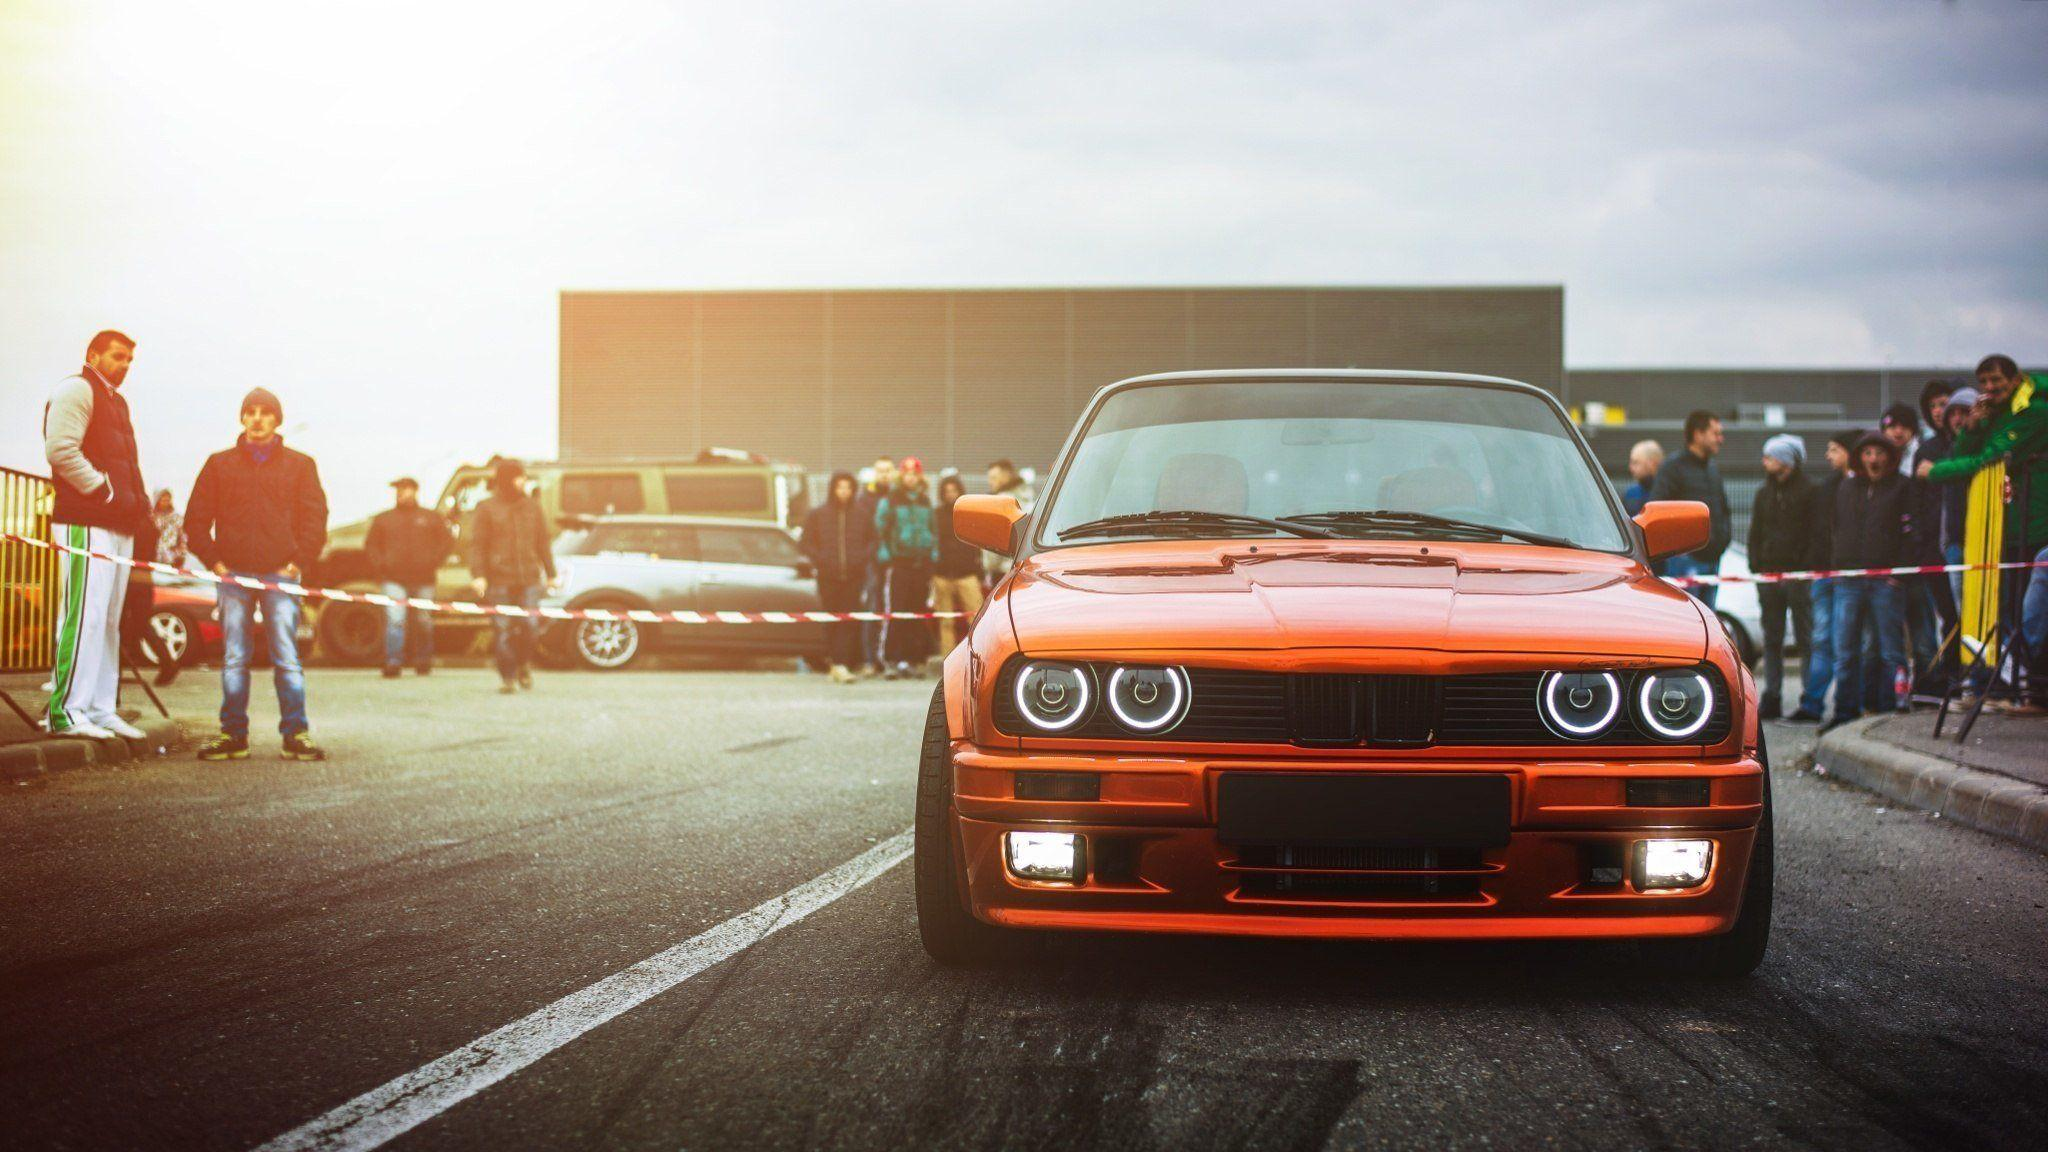 Drifting Bmw Wallpapers Wallpaper Cave